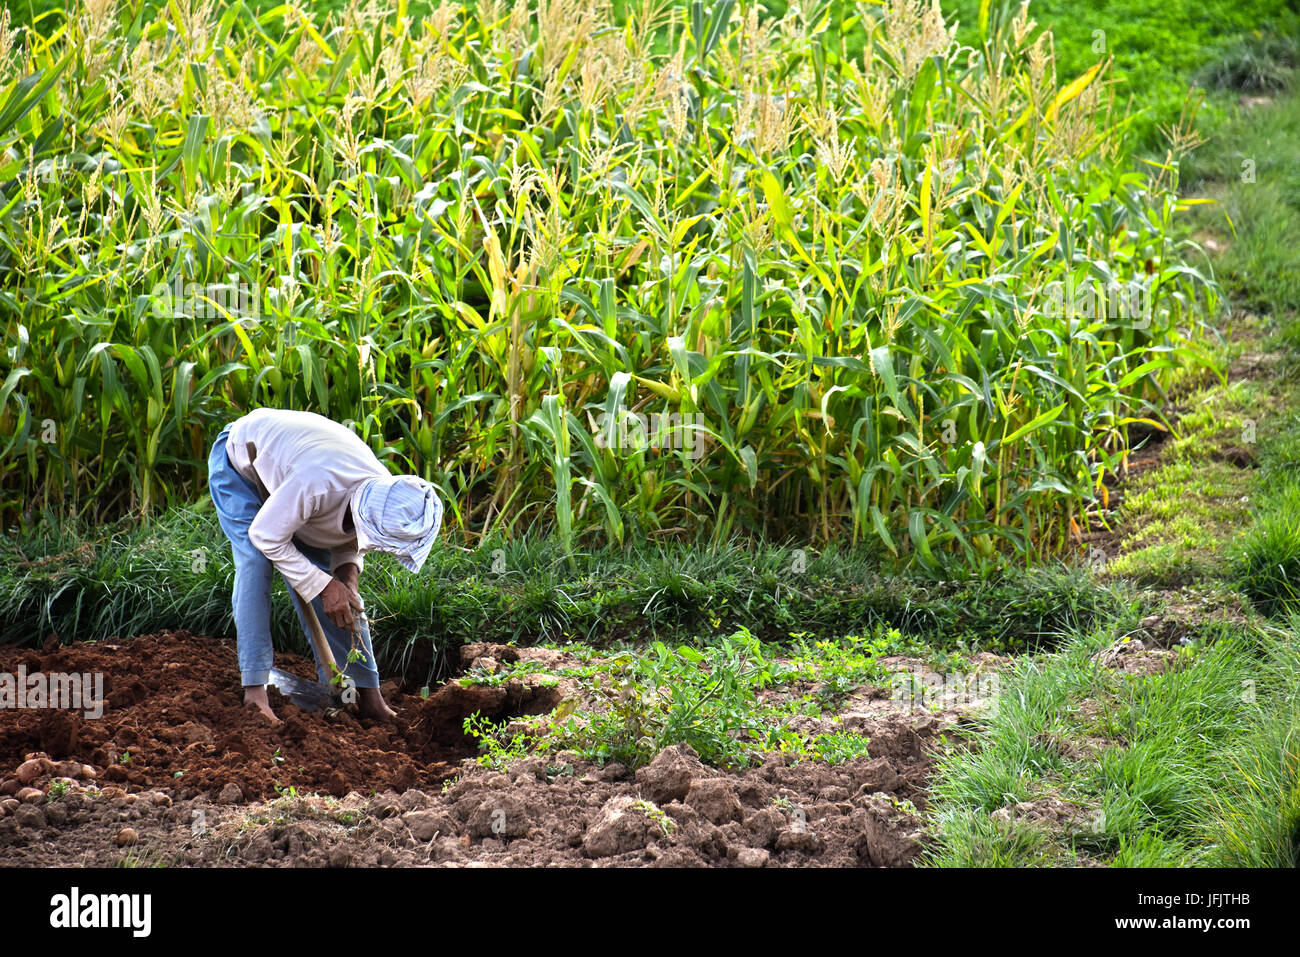 Self-sufficient labor-intensive farming in Morocco. Traditional sustainable agriculture. - Stock Image